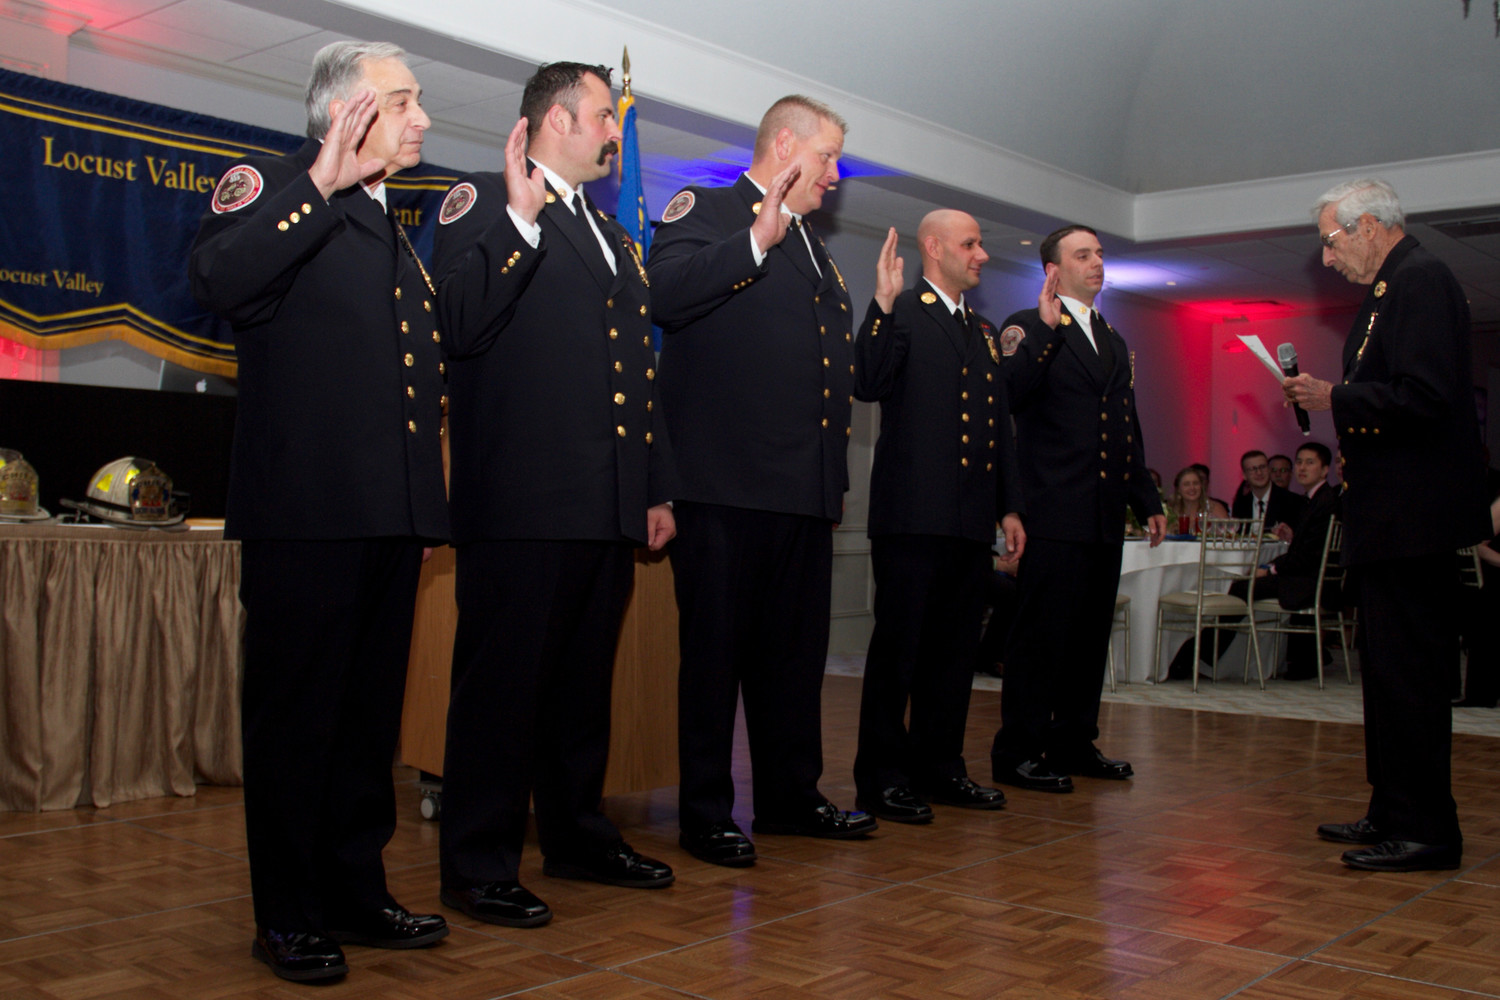 Locust Valley Fire Department officers were installed.